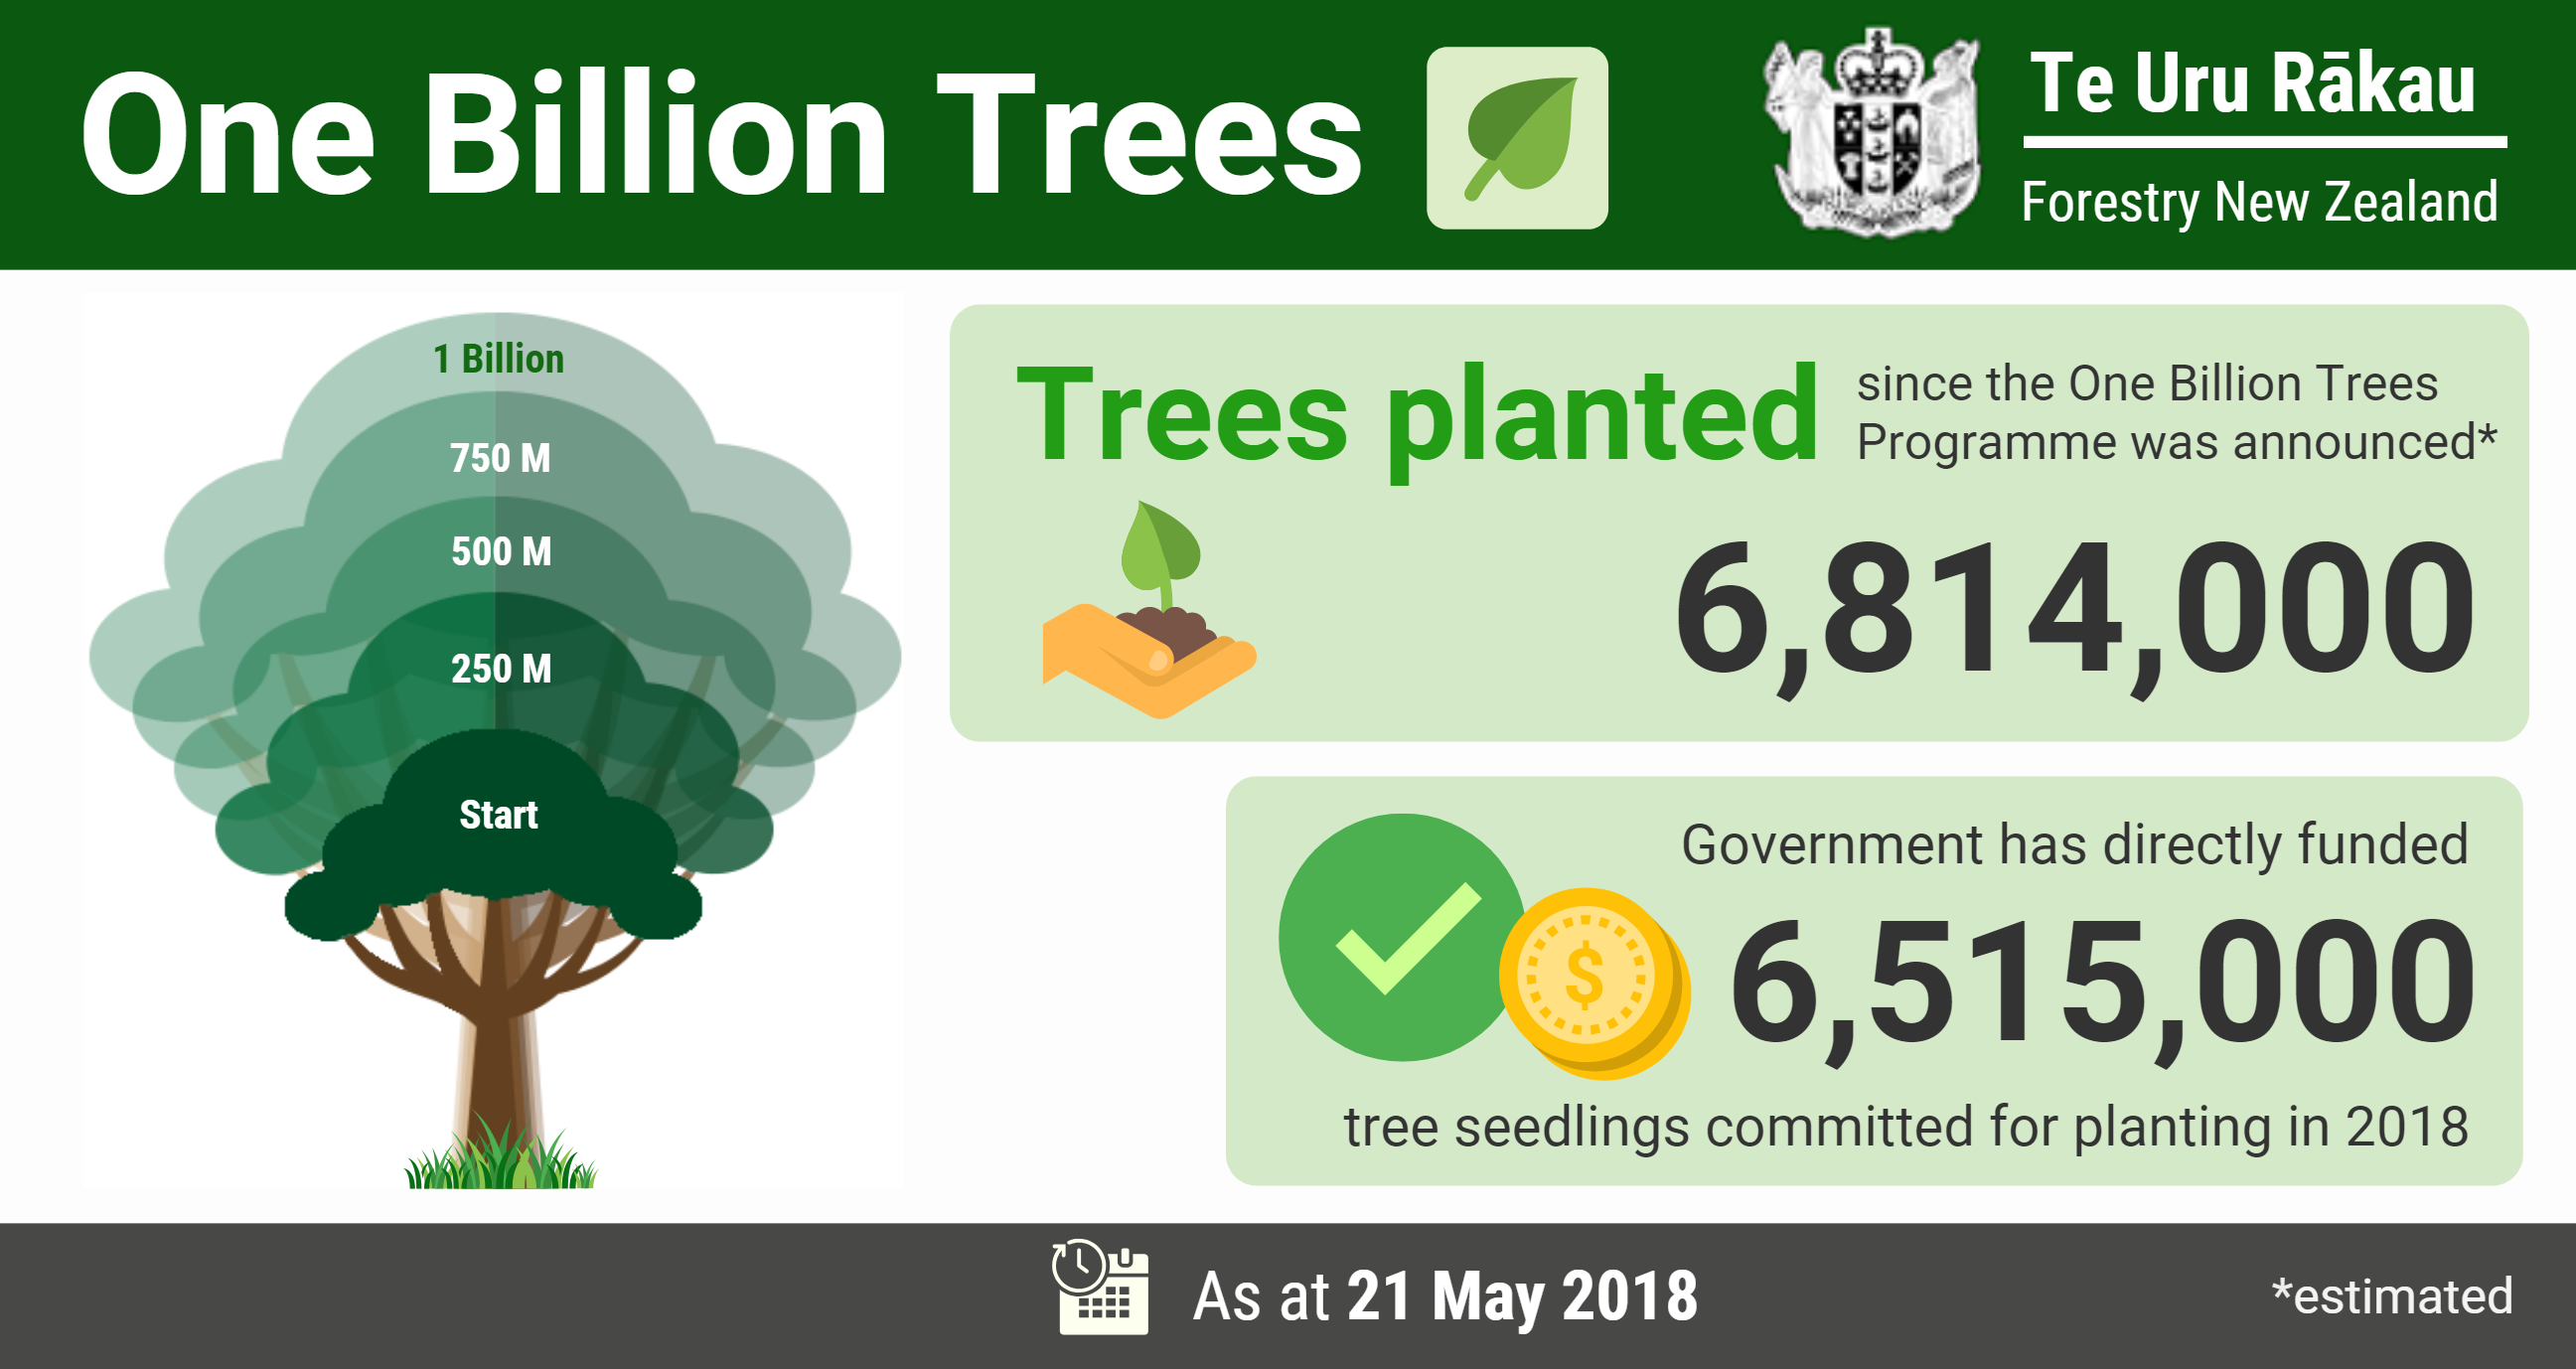 Tracking progress for 1 billion trees